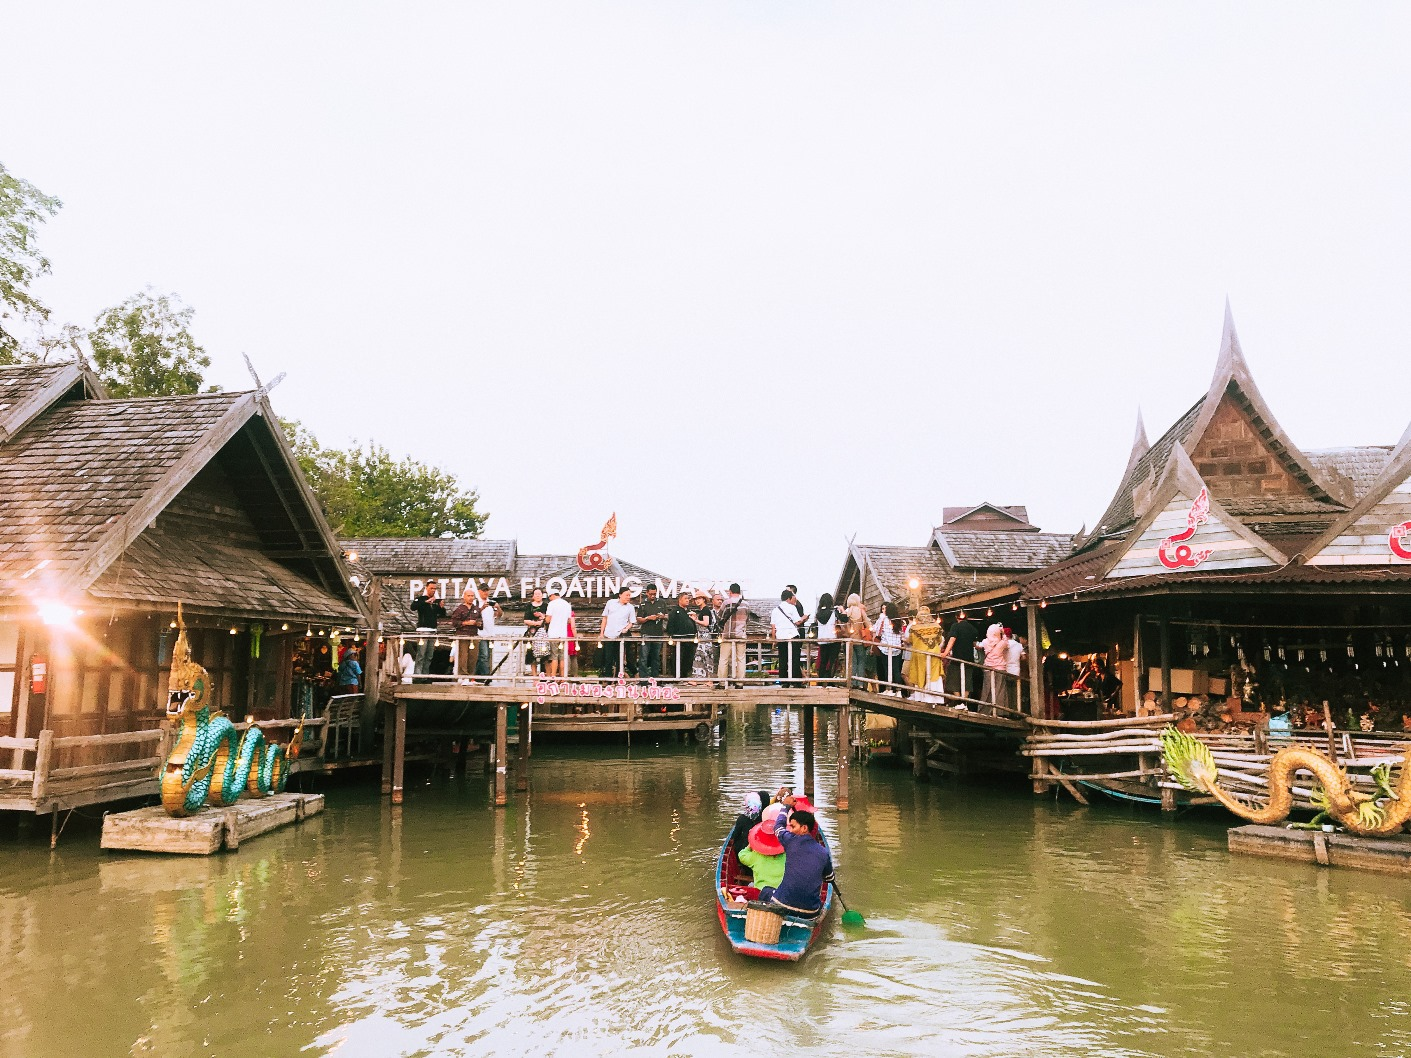 Pattaya Floating Market di Thailand